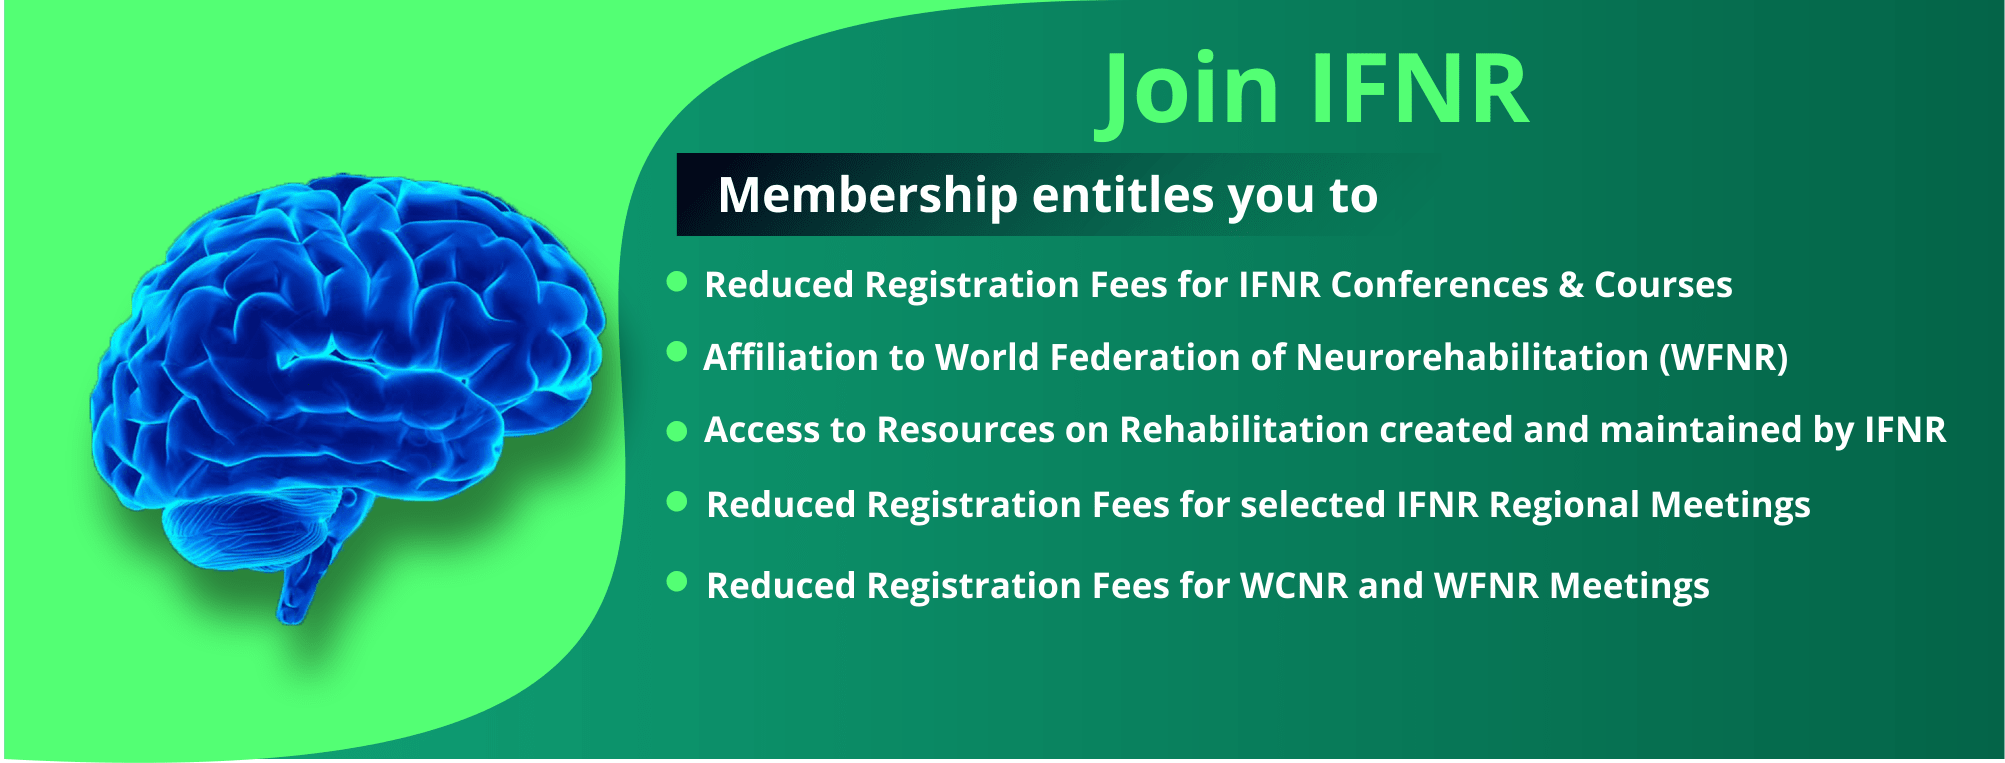 Join IFNR